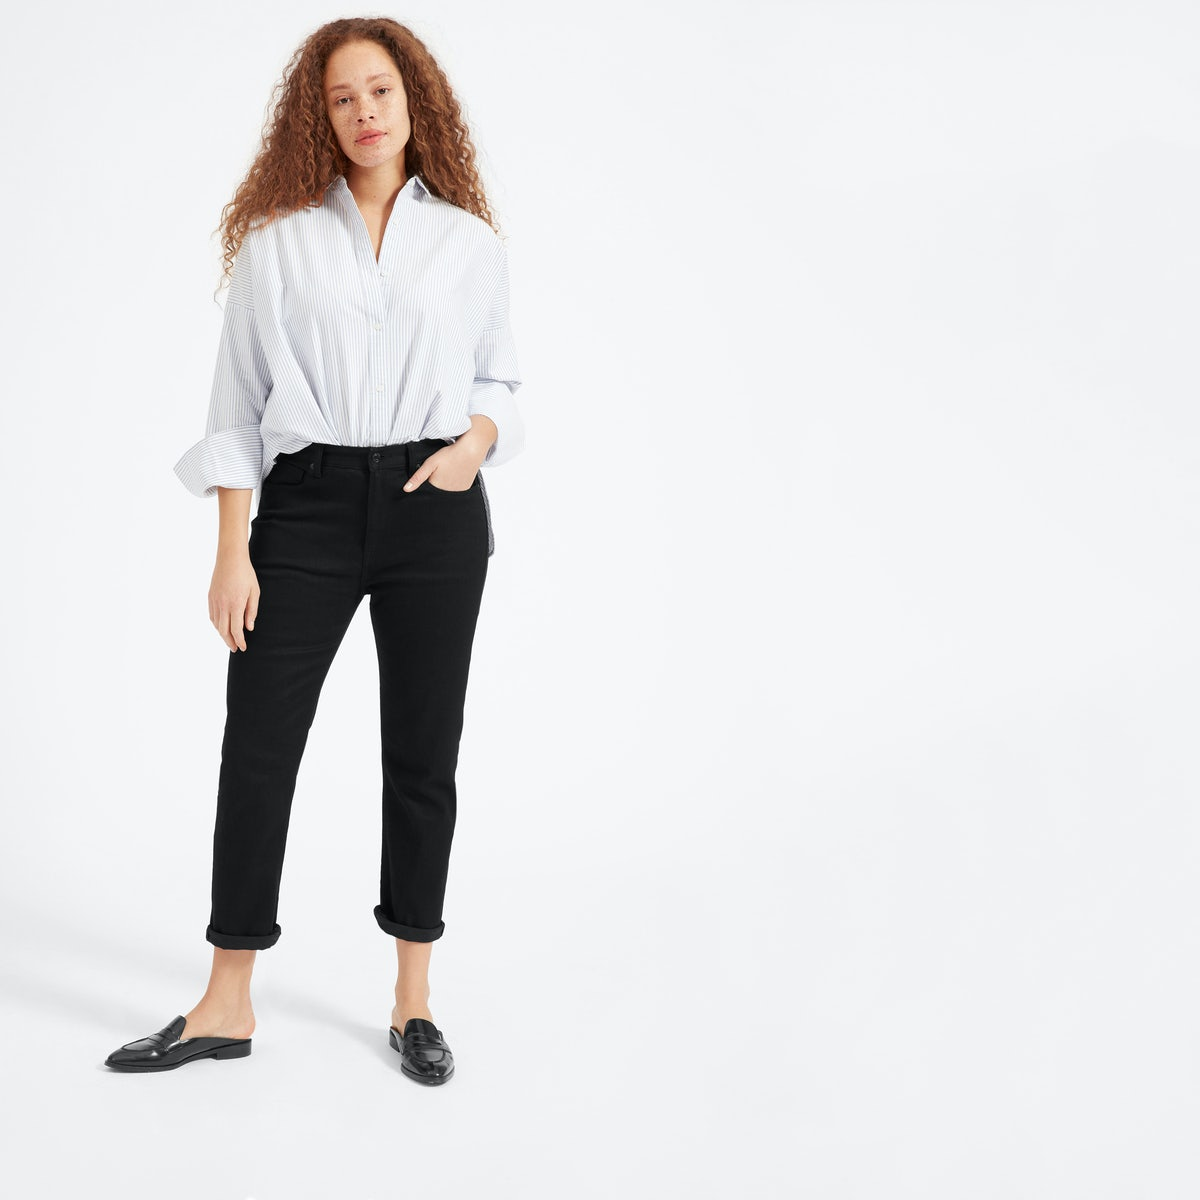 c188ade1ea7c 30 Days of Outfit Ideas  How to Style Black Jeans - BeautyMommy